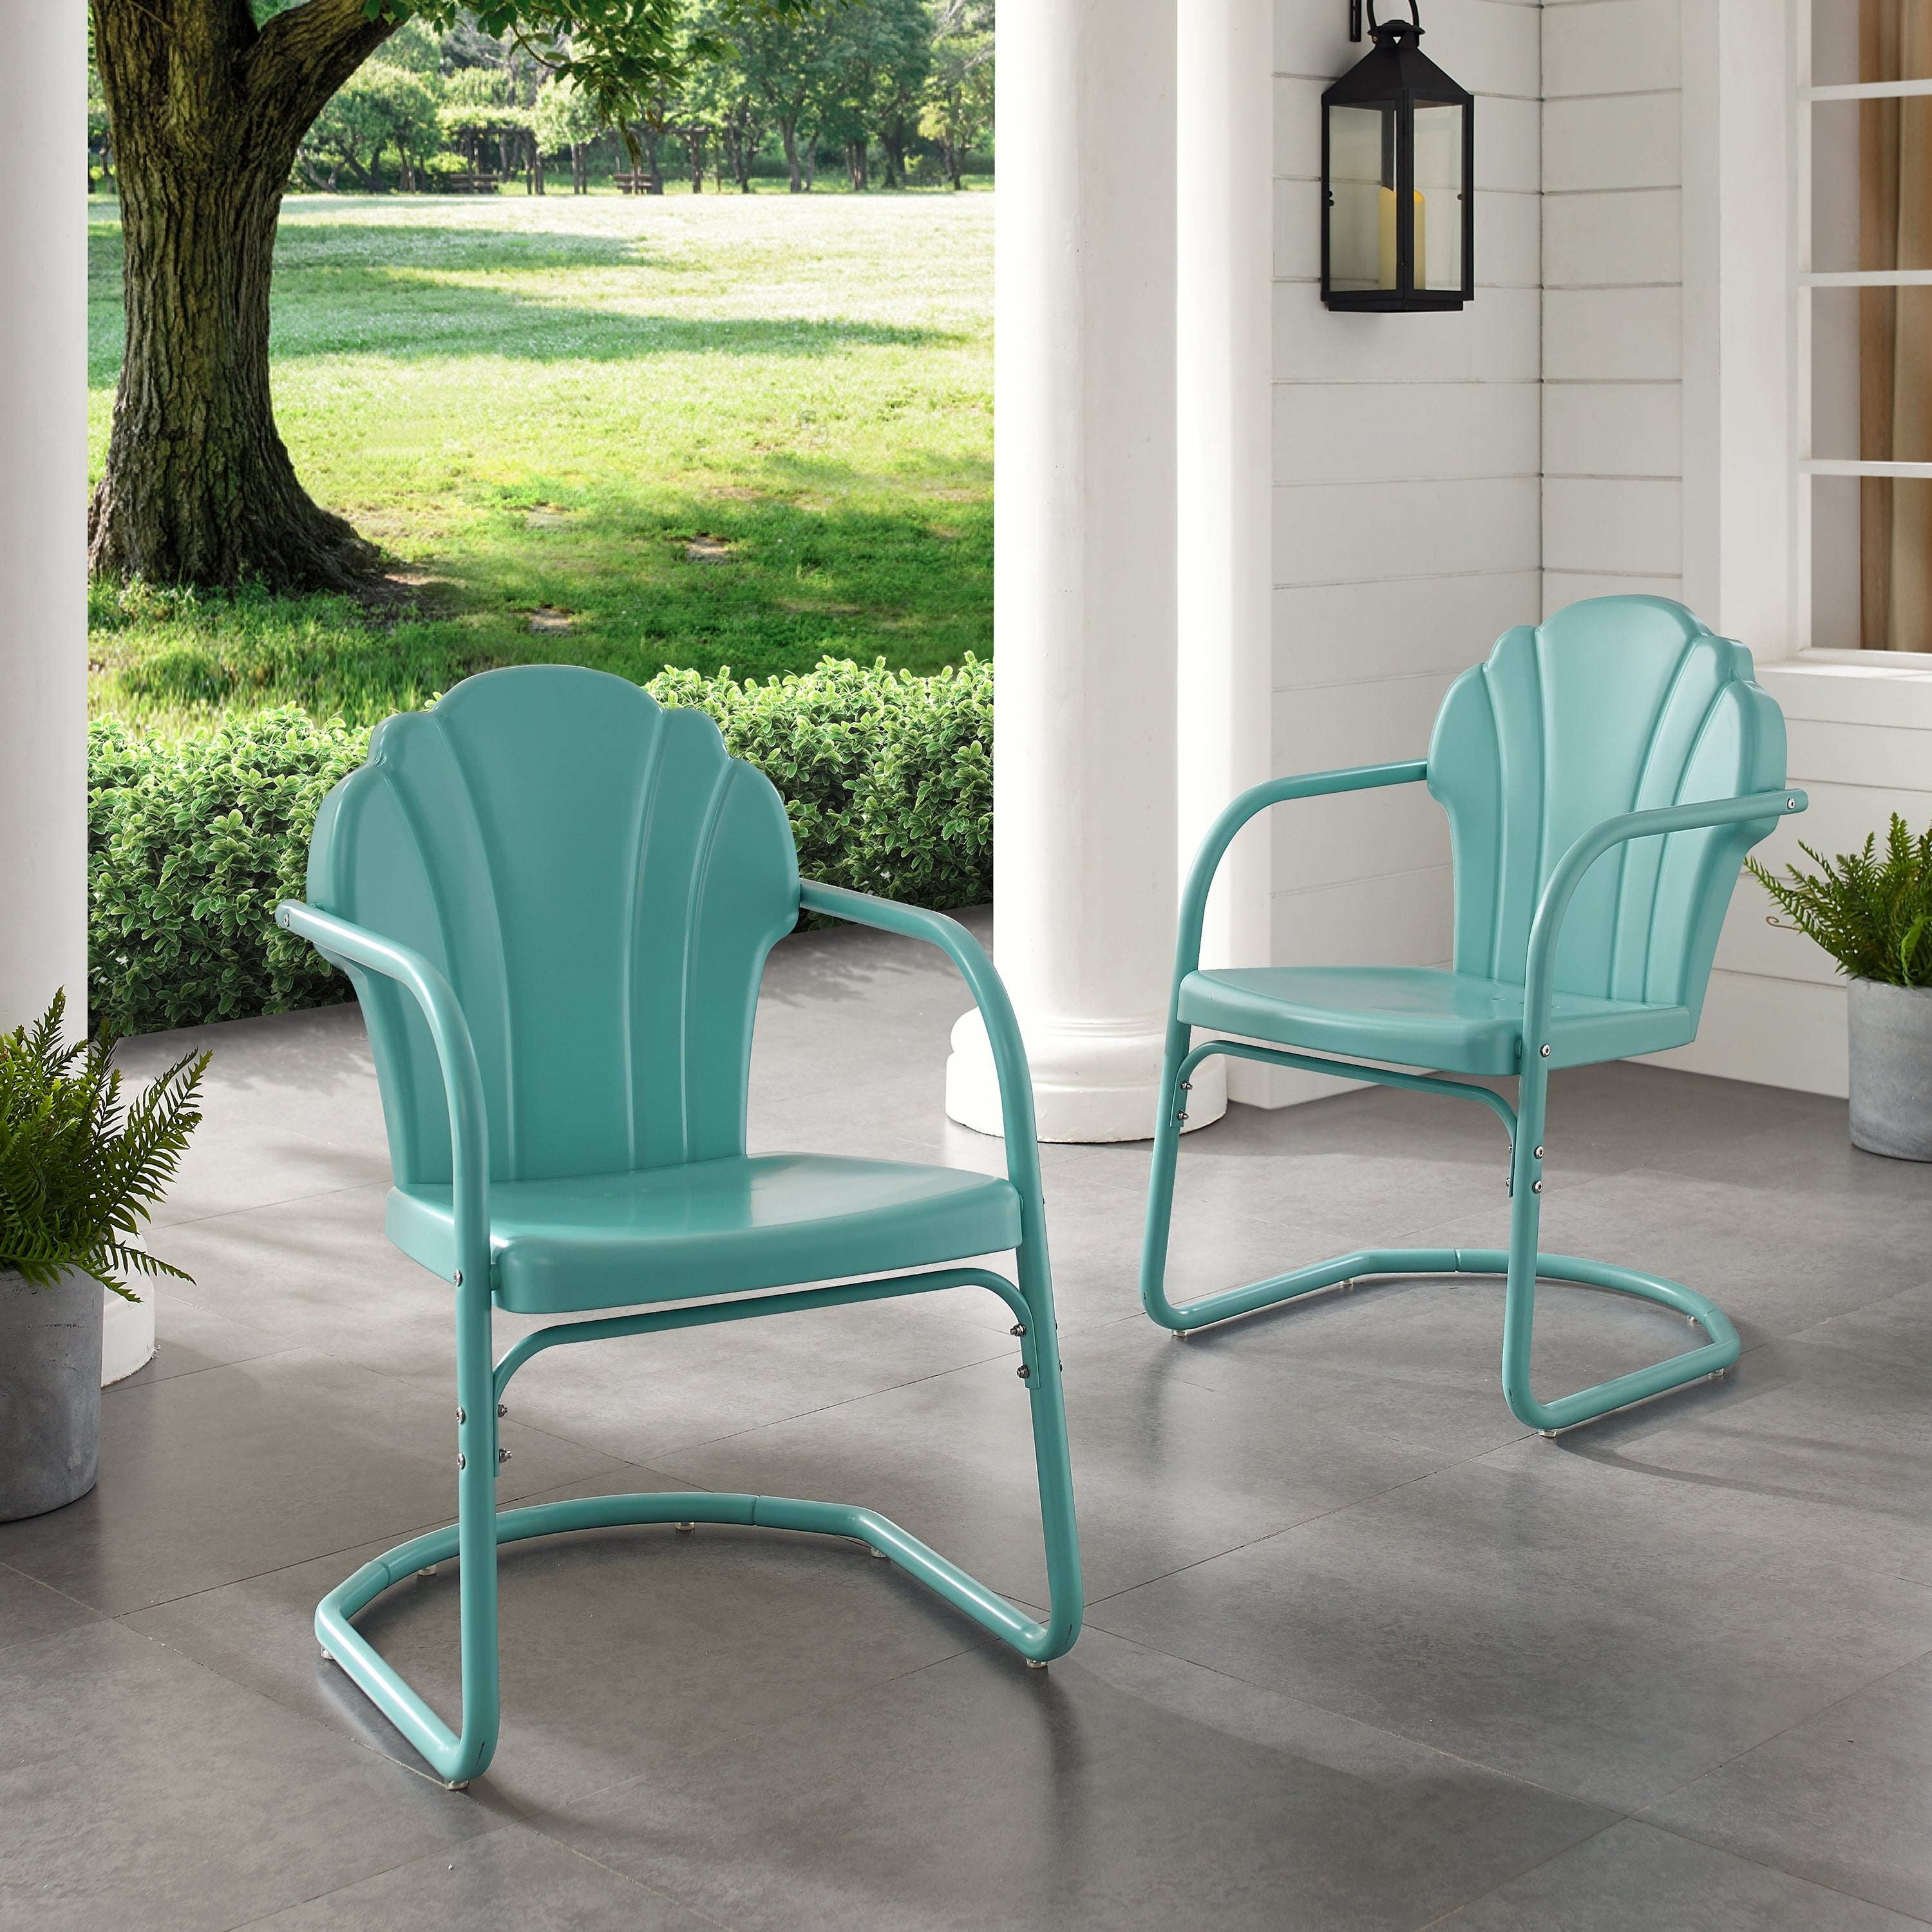 Diana Bay Blue Retro Metal Chairs